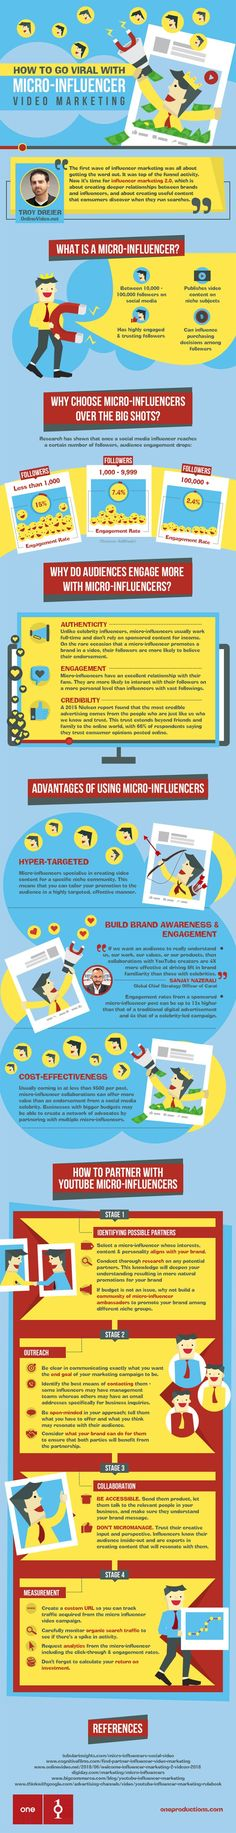 Discover the power of micro-influencer video marketing with this infographic. Learn how to go viral with micro-influencer videos. Digital Marketing Strategy, Content Marketing, Social Media Marketing, Marketing Tools, Marketing Ideas, Vlog Tips, Le Social, Relationship Marketing, Media Influence